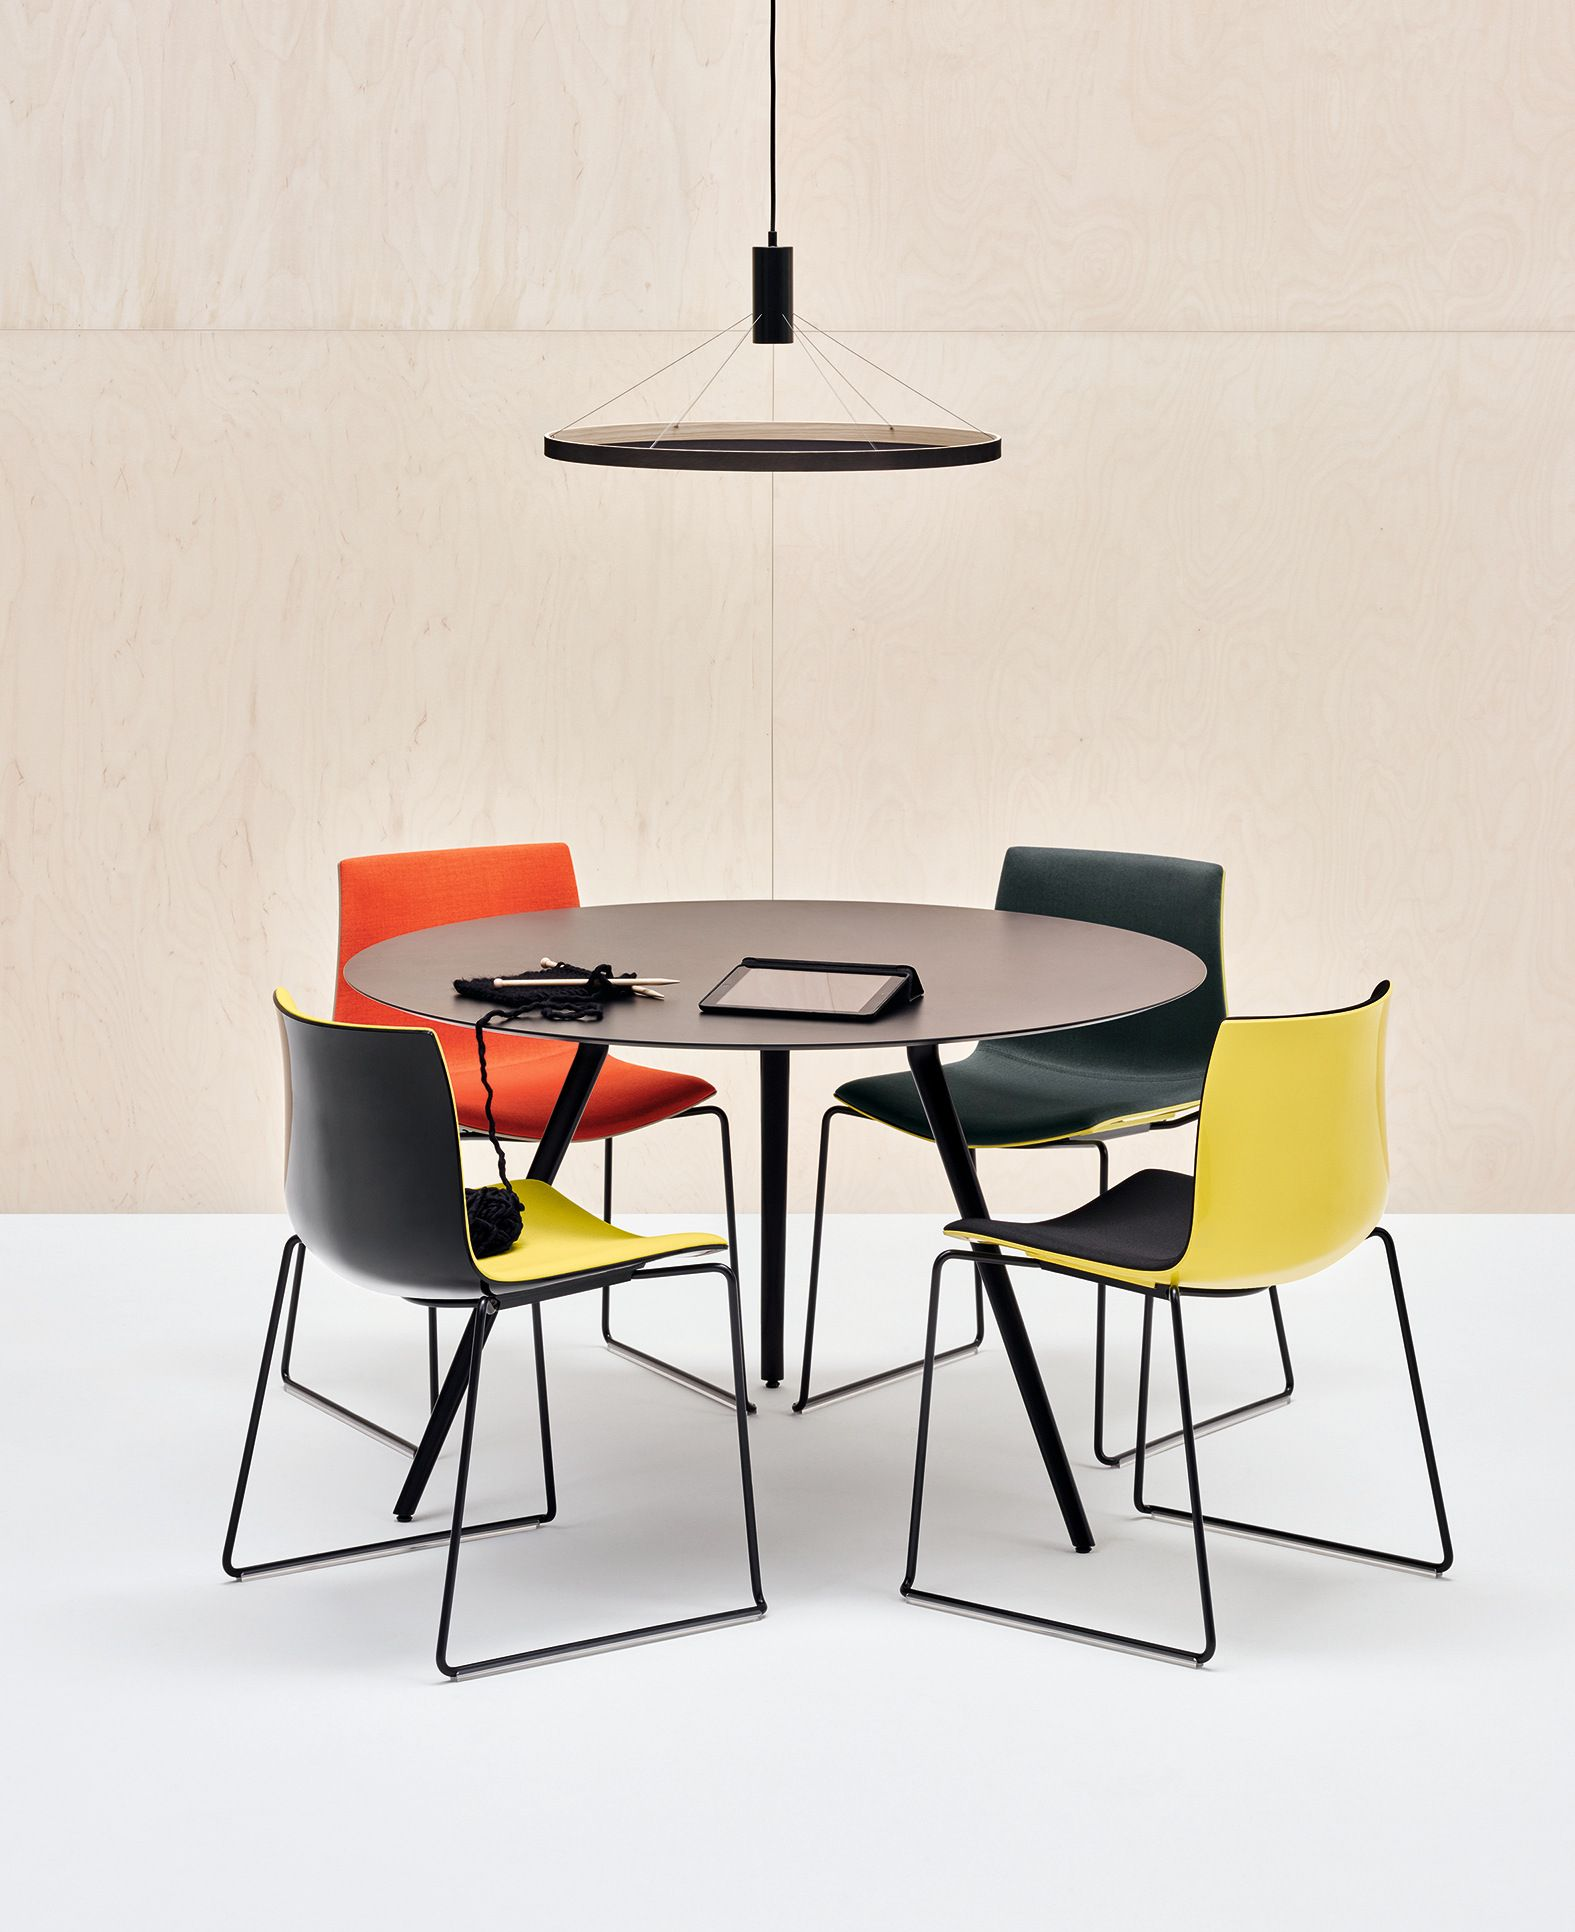 High Quality Round Meeting Table MEETY By Arper Design Lievore Altherr Molina